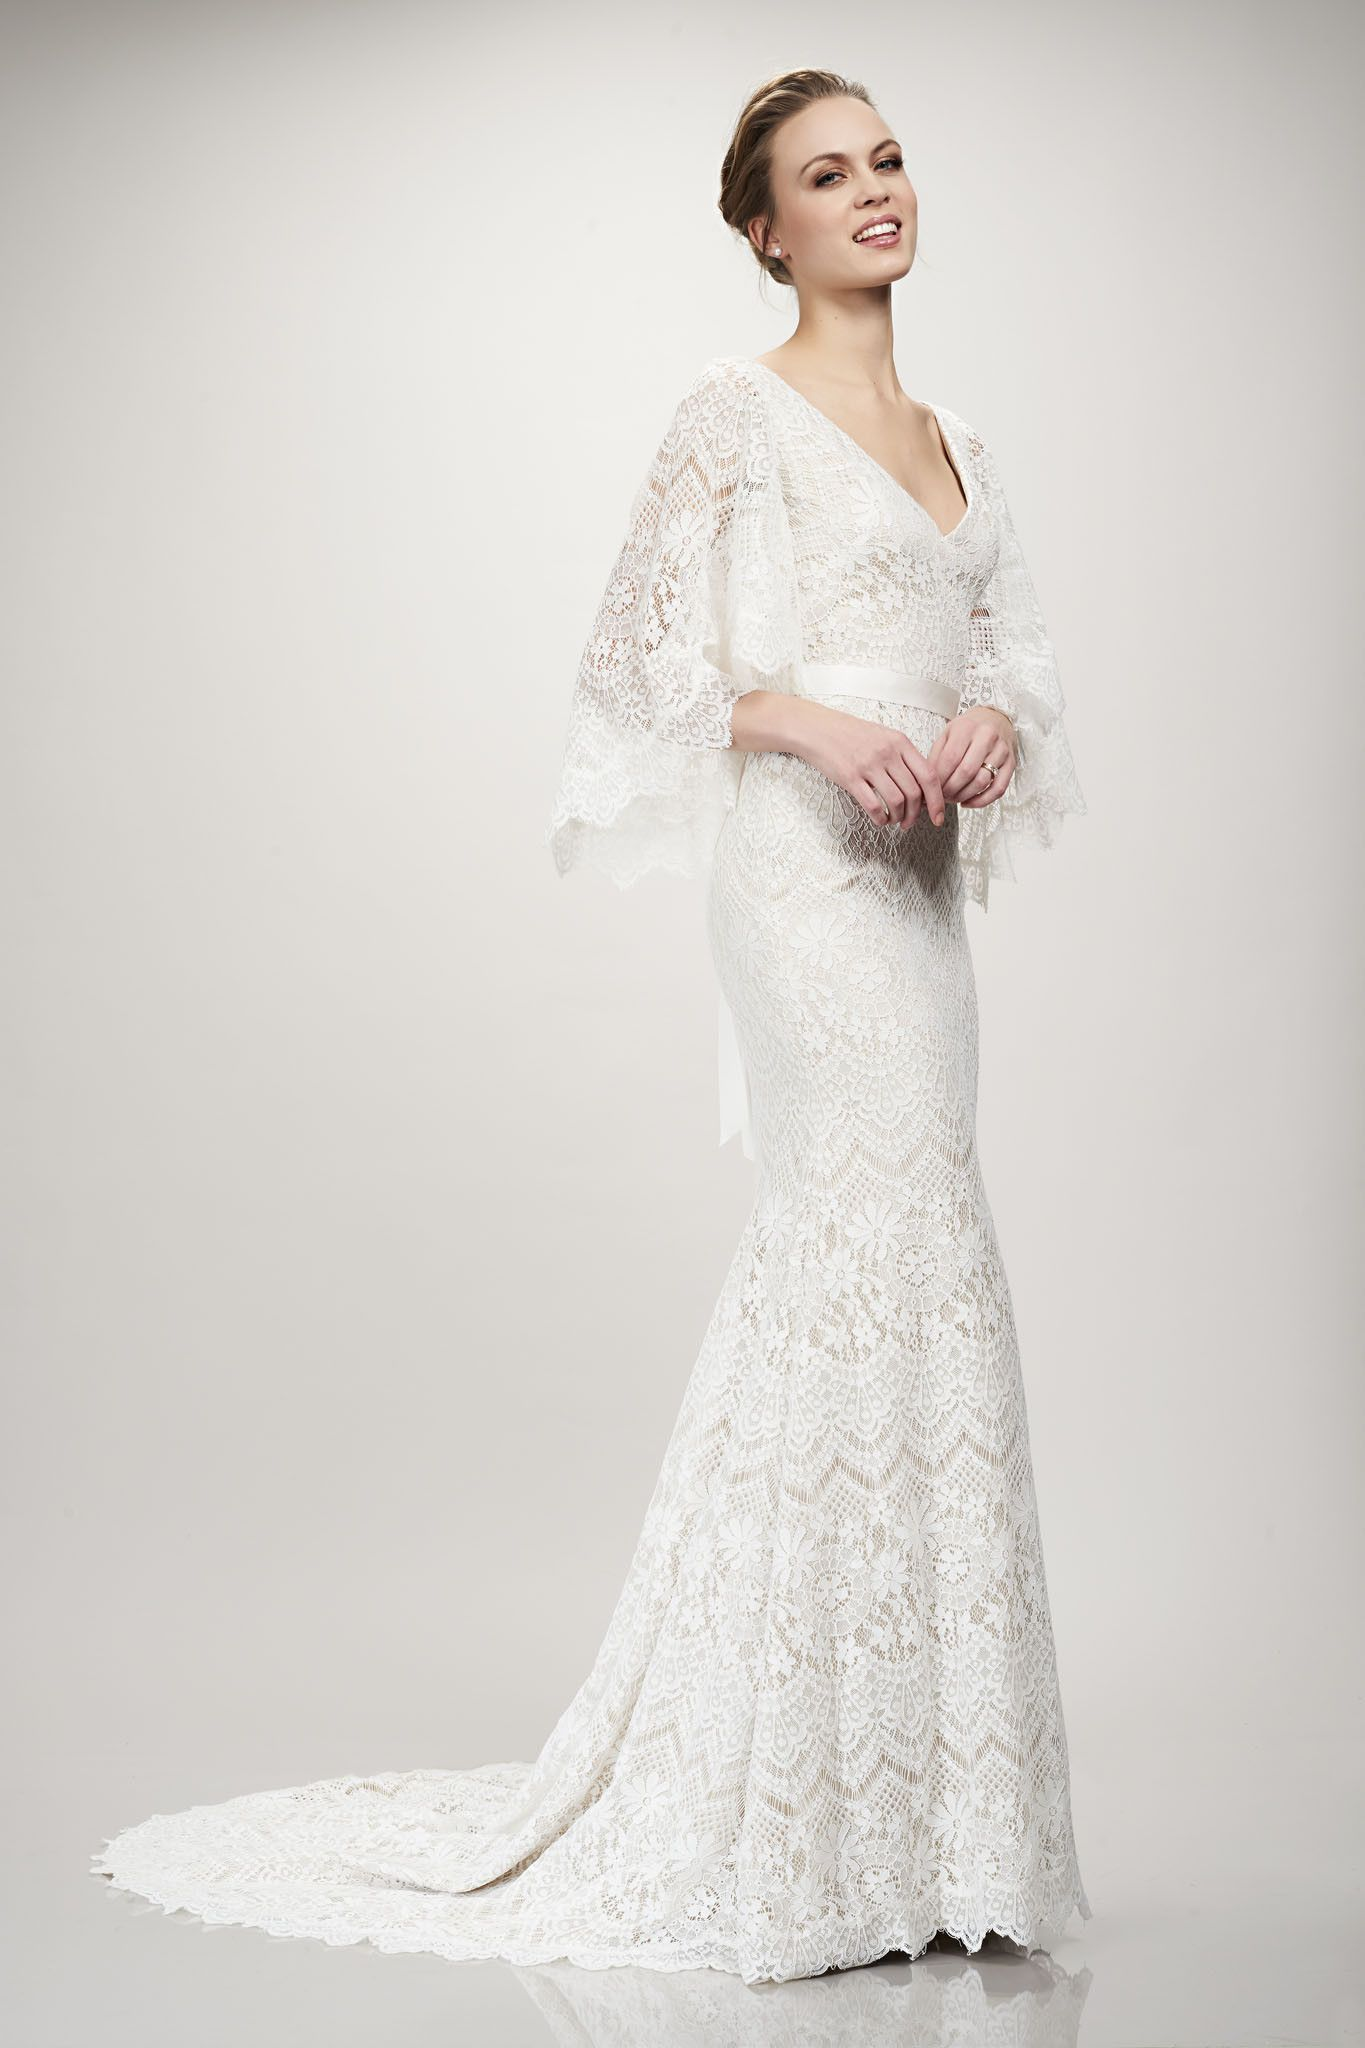 25e8de88def Sandy by Theia Couture available at The Bridal Atelier  www.thebridalatelier.com.au  sheisthebridalatelierbride  thebridalatelier